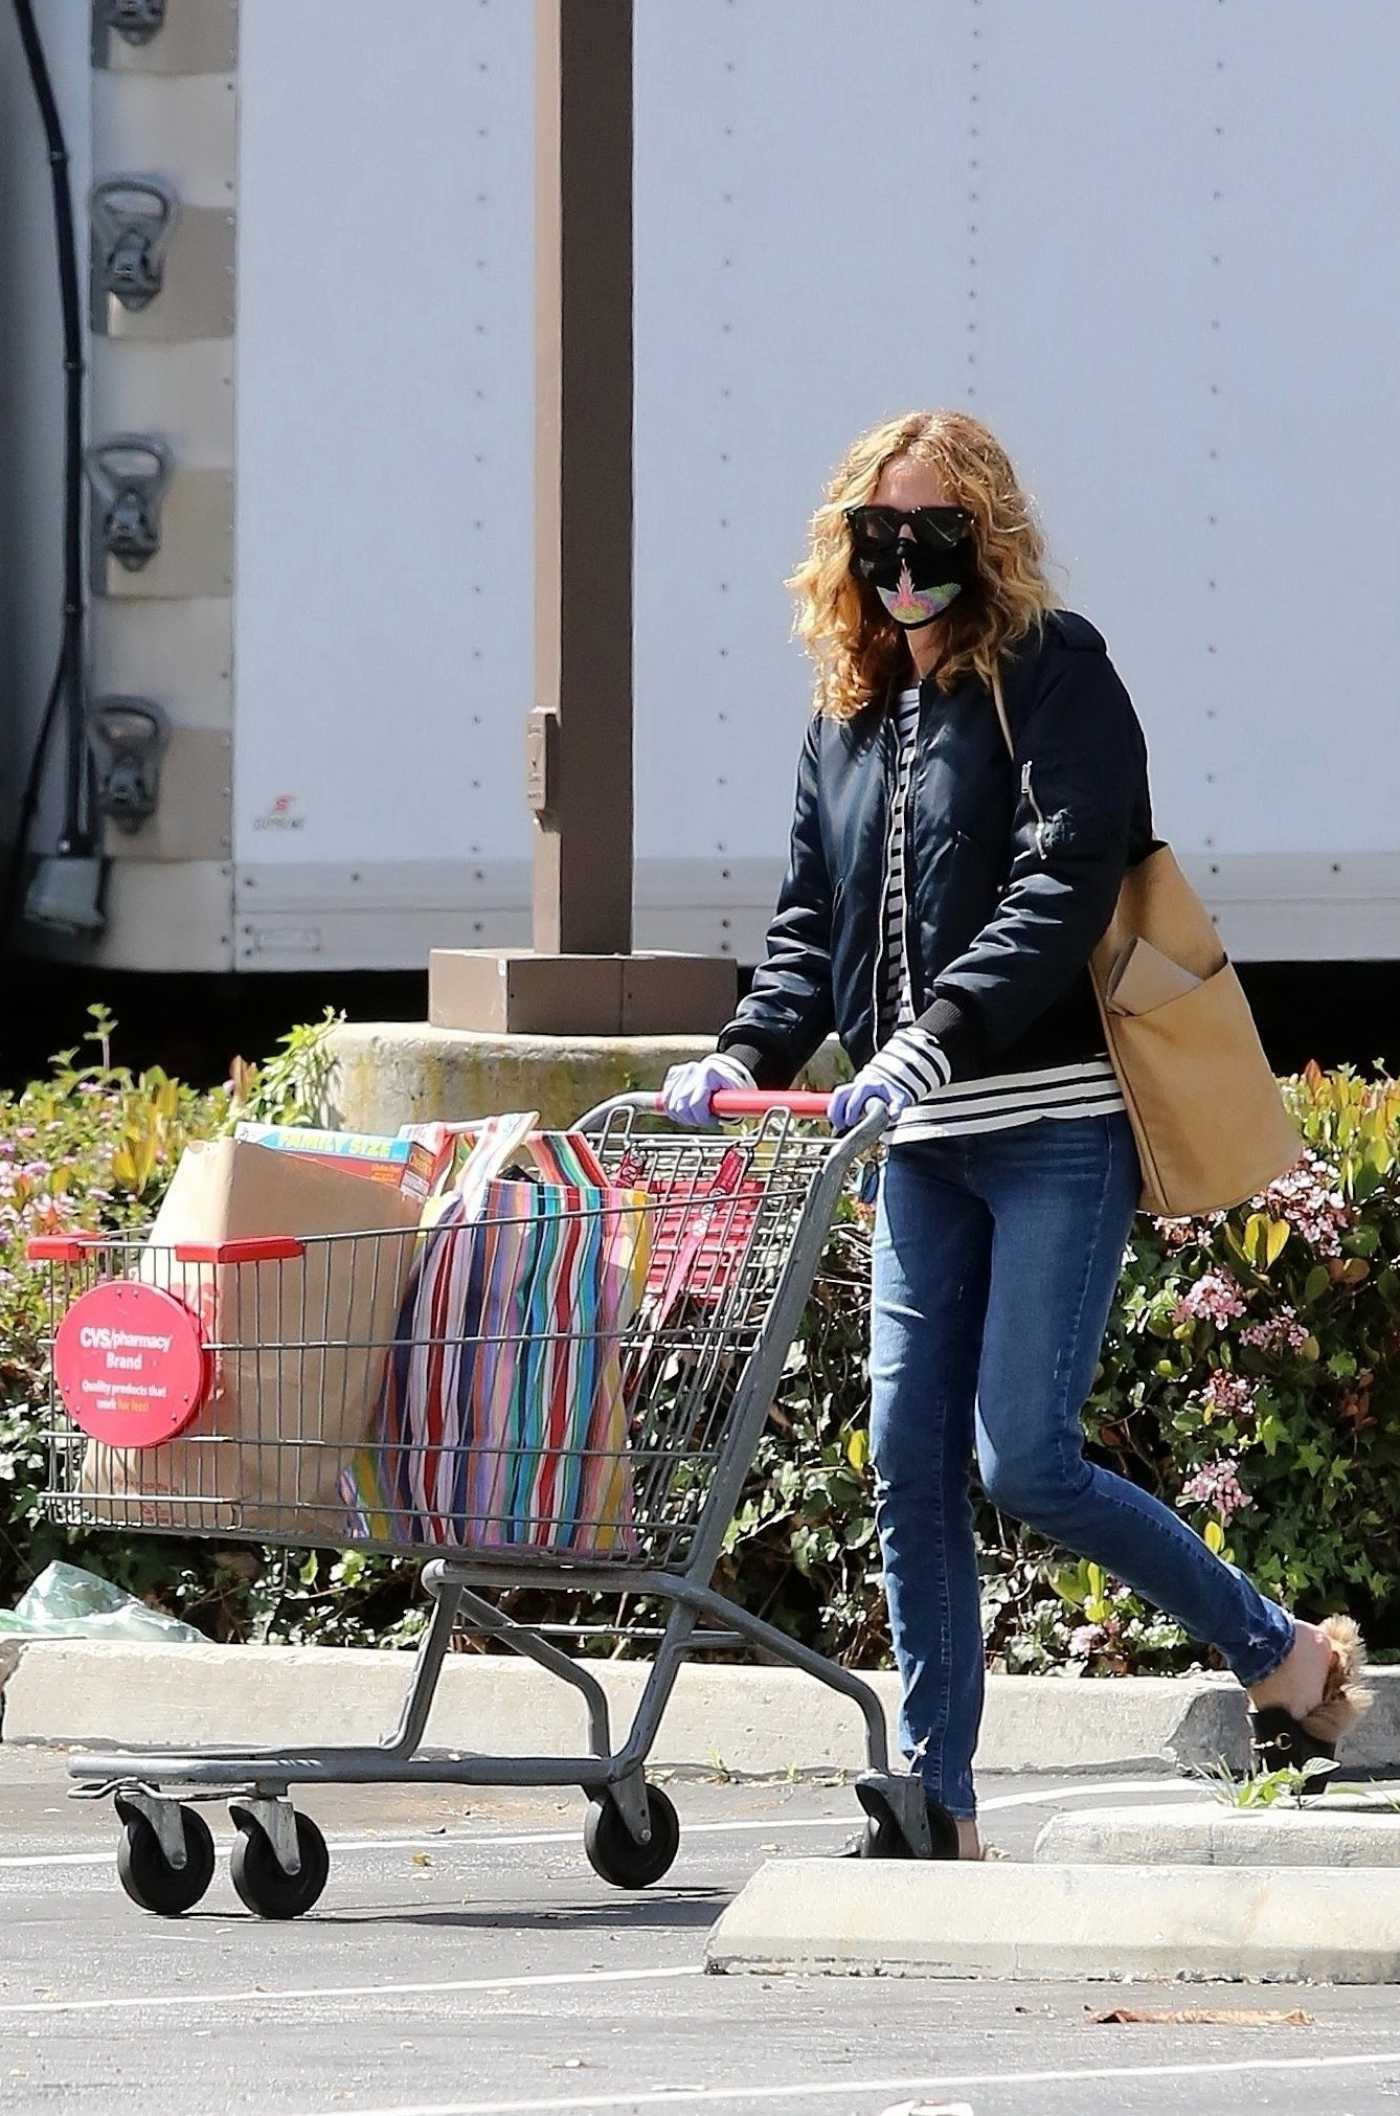 Julia Roberts in a Black Surgical Face Mask Goes Shopping at CVS Pharmacy in Malibu 04/03/2020